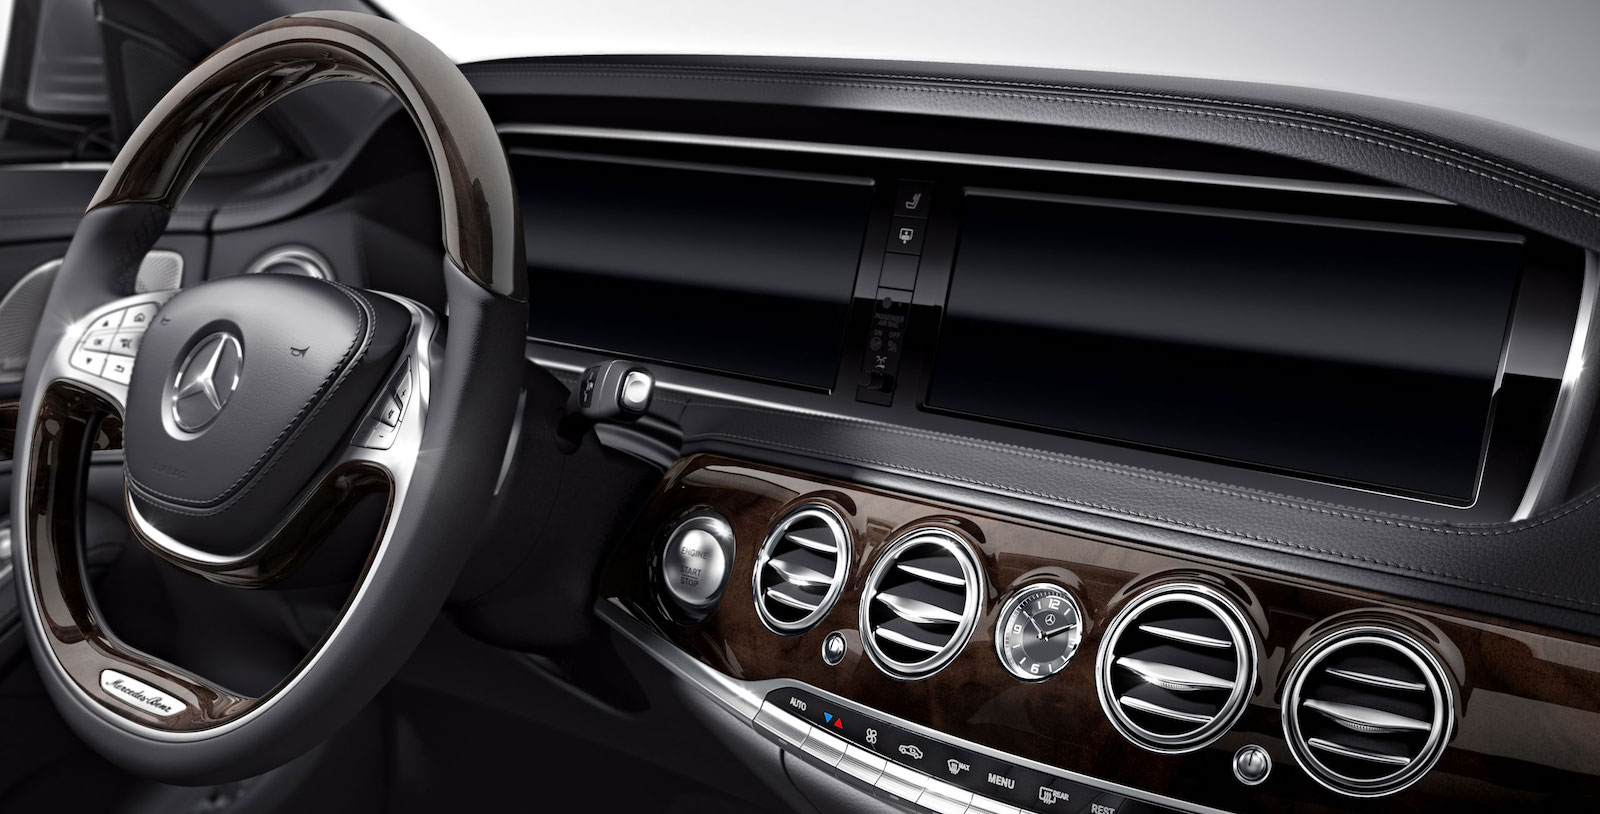 2016 Mercedes S-Class Technology